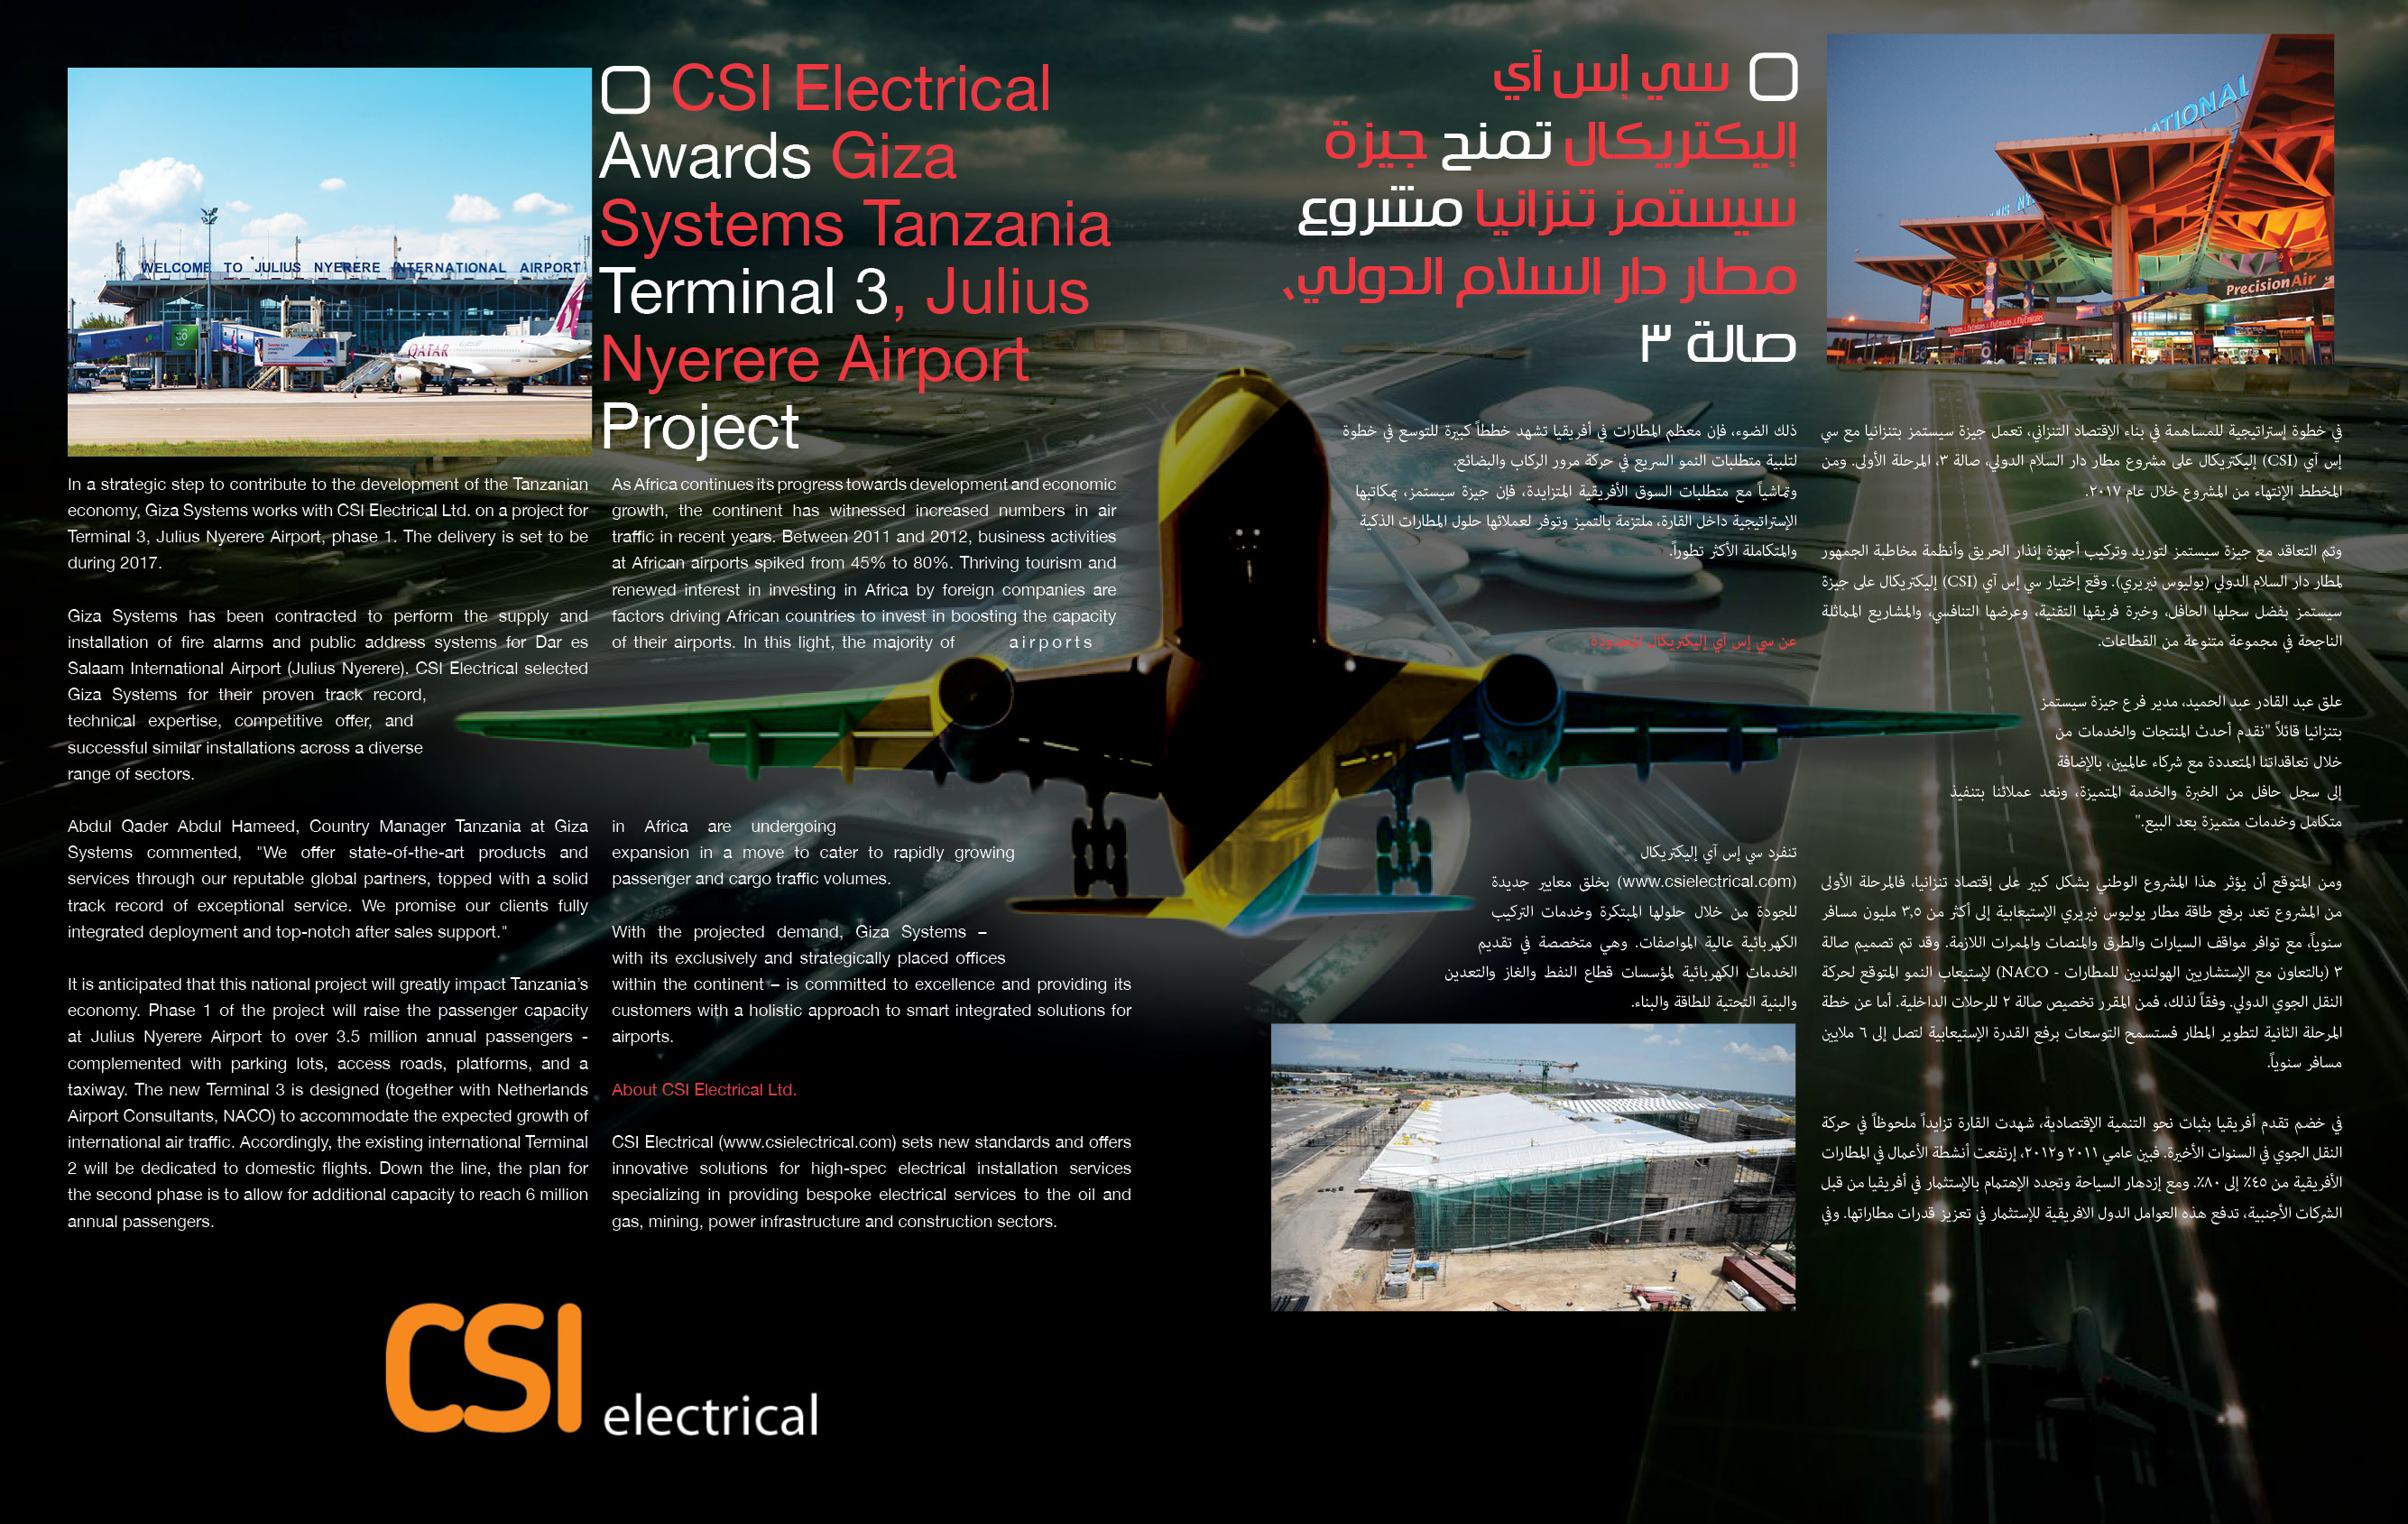 CSI Electrical awards Giza Systems Tanzania Airport Project